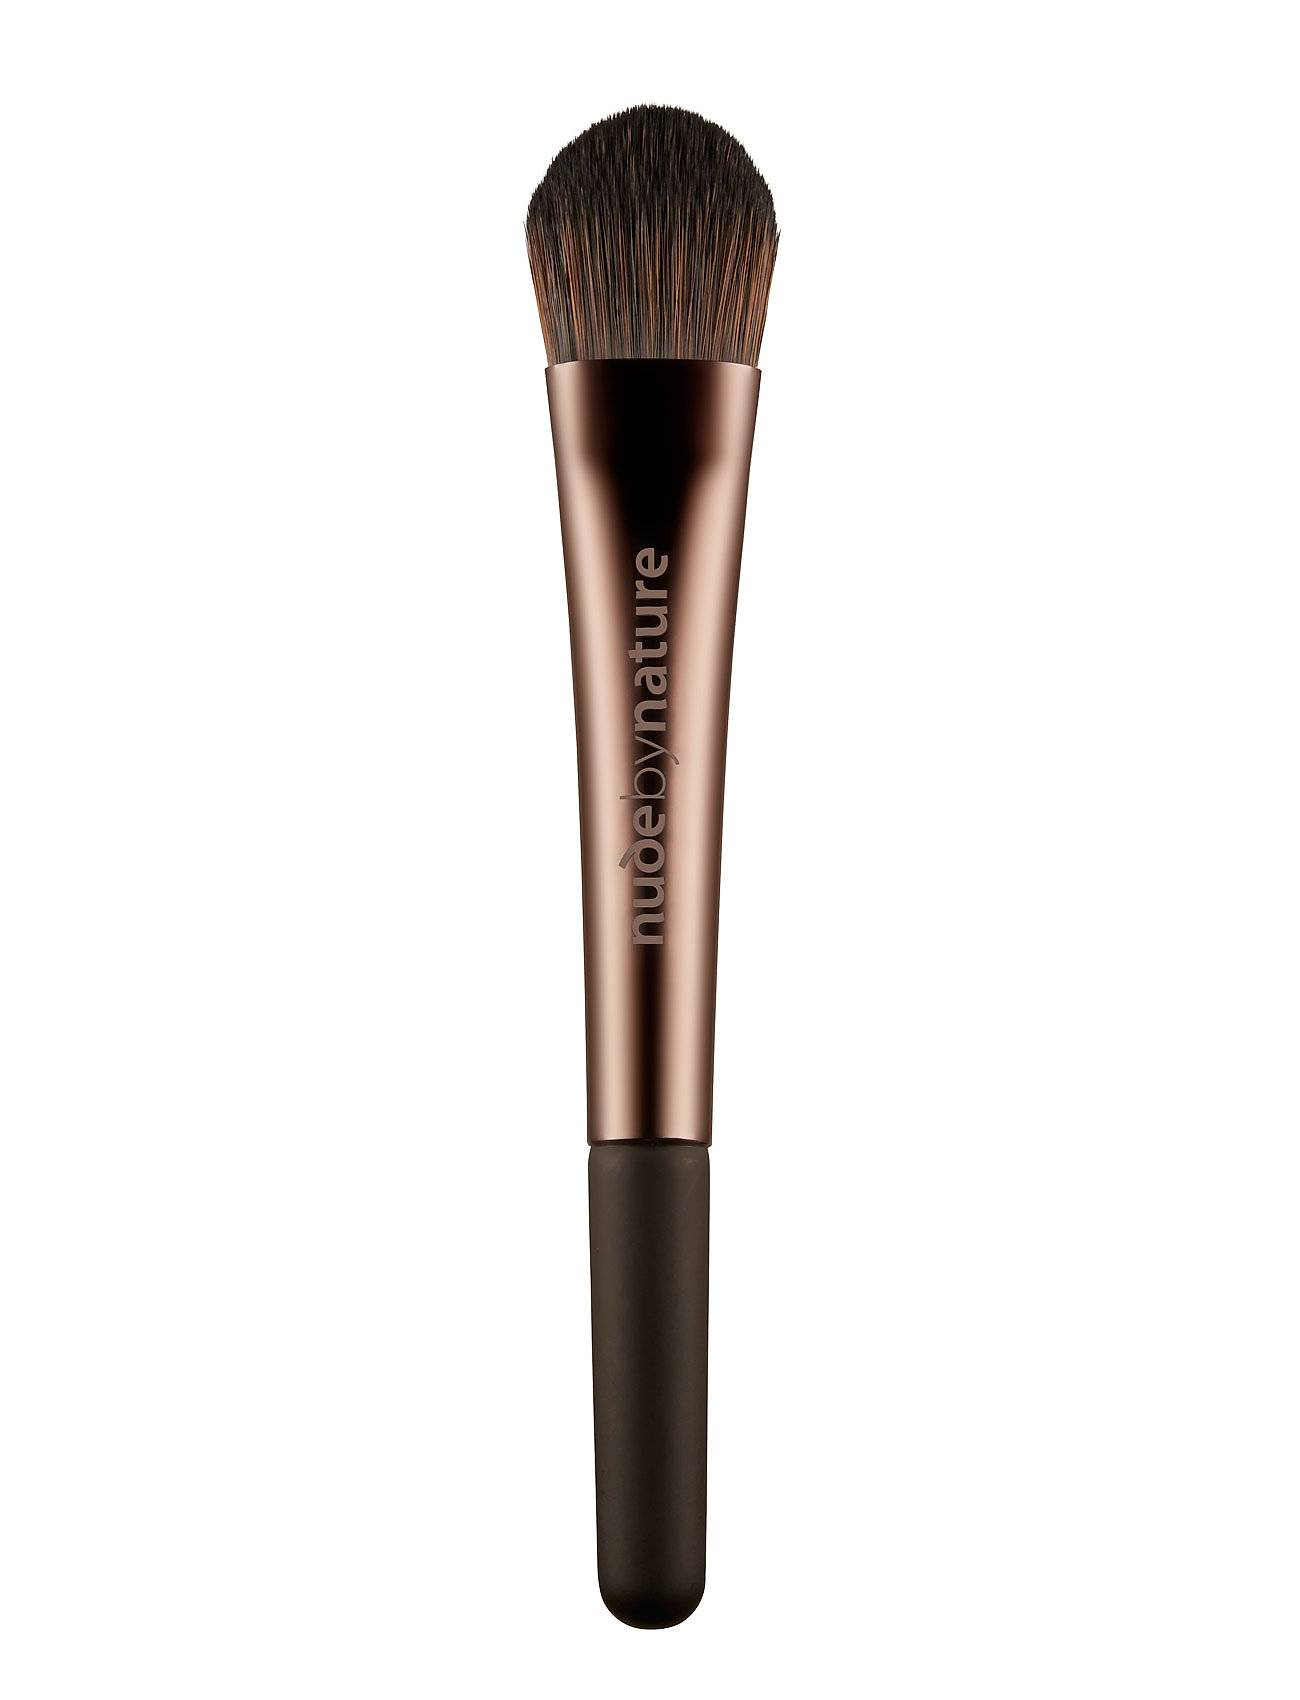 Nude by Nature Brushes 02 Liquid Foundation Brush Beauty WOMEN Makeup Makeup Brushes Face Brushes Nude Nude By Nature